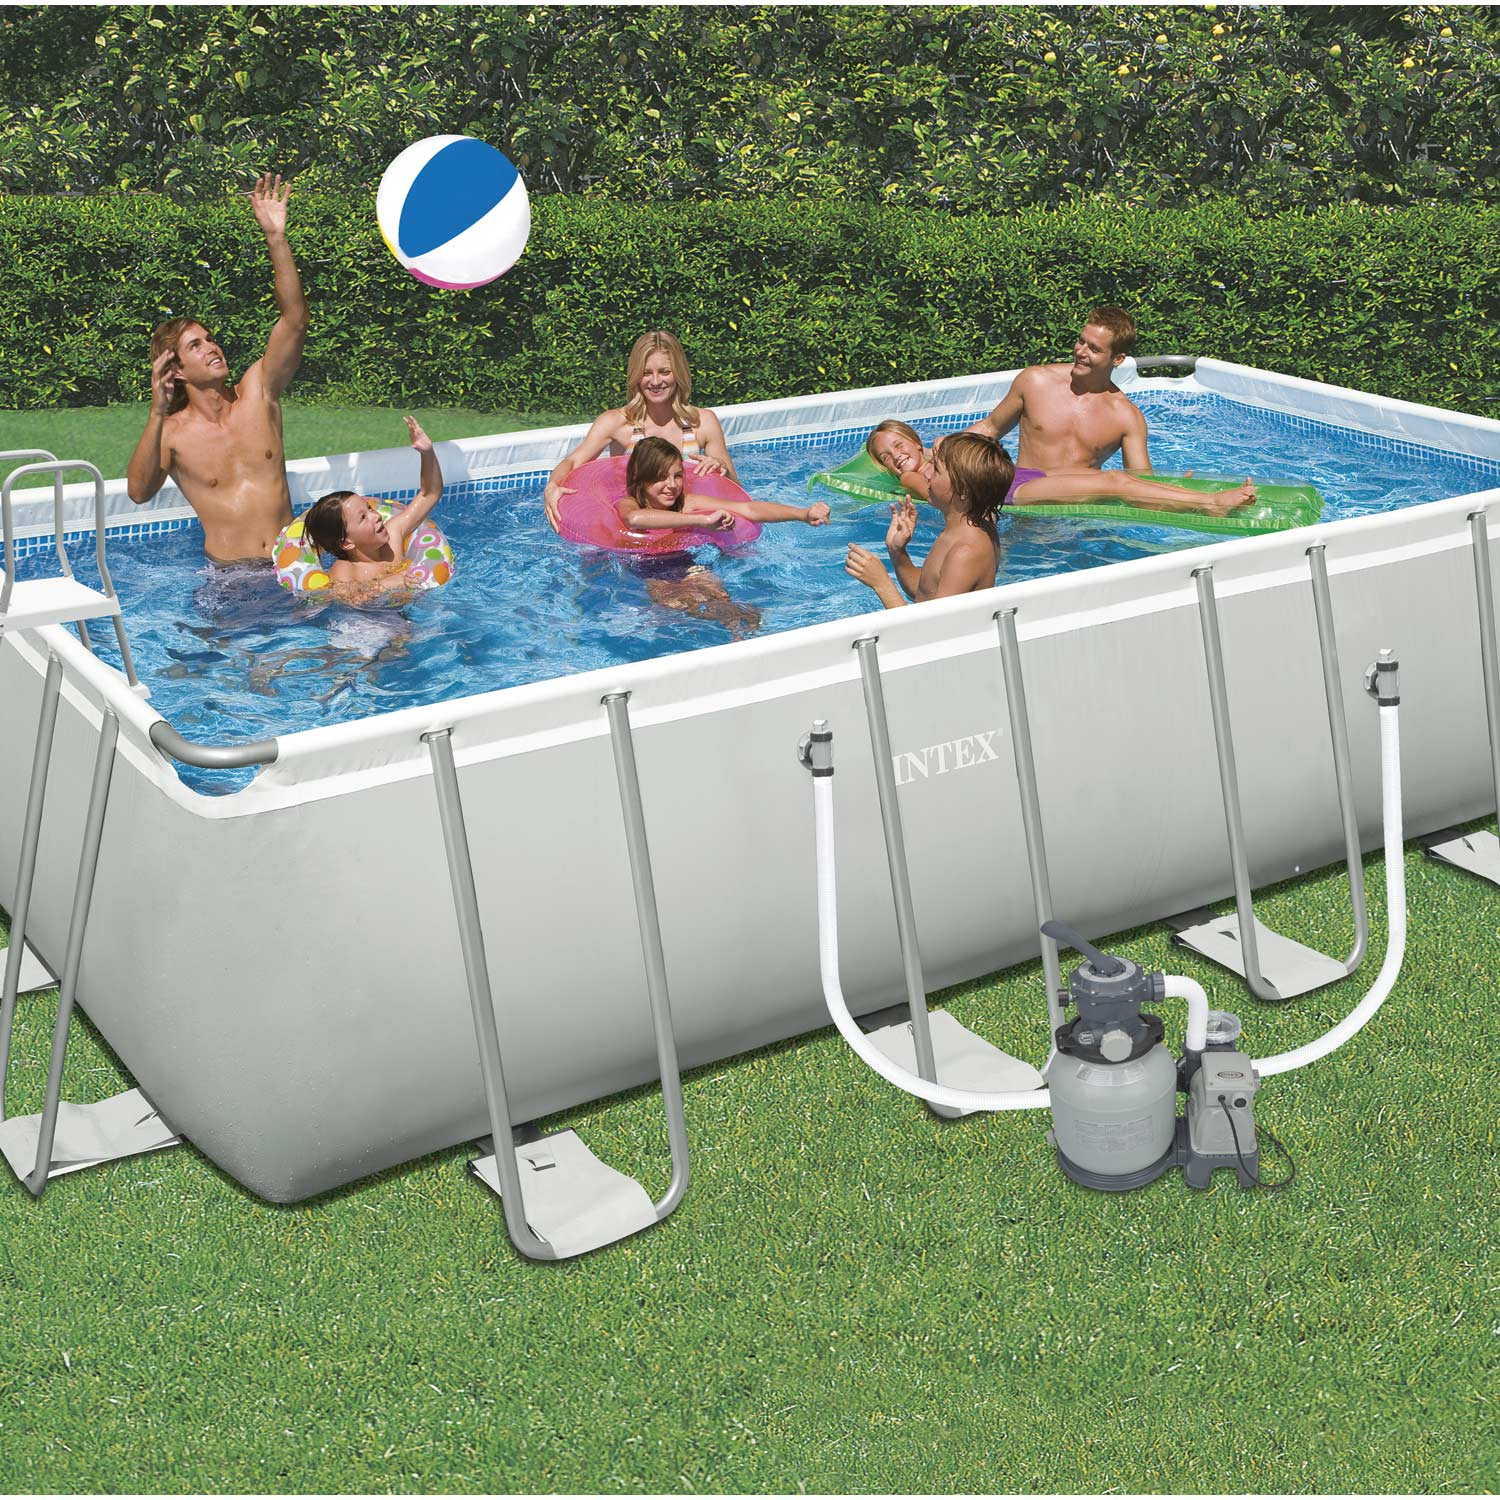 Piscine hors sol autoportante tubulaire ultra silver intex for Piscine demontable hors sol